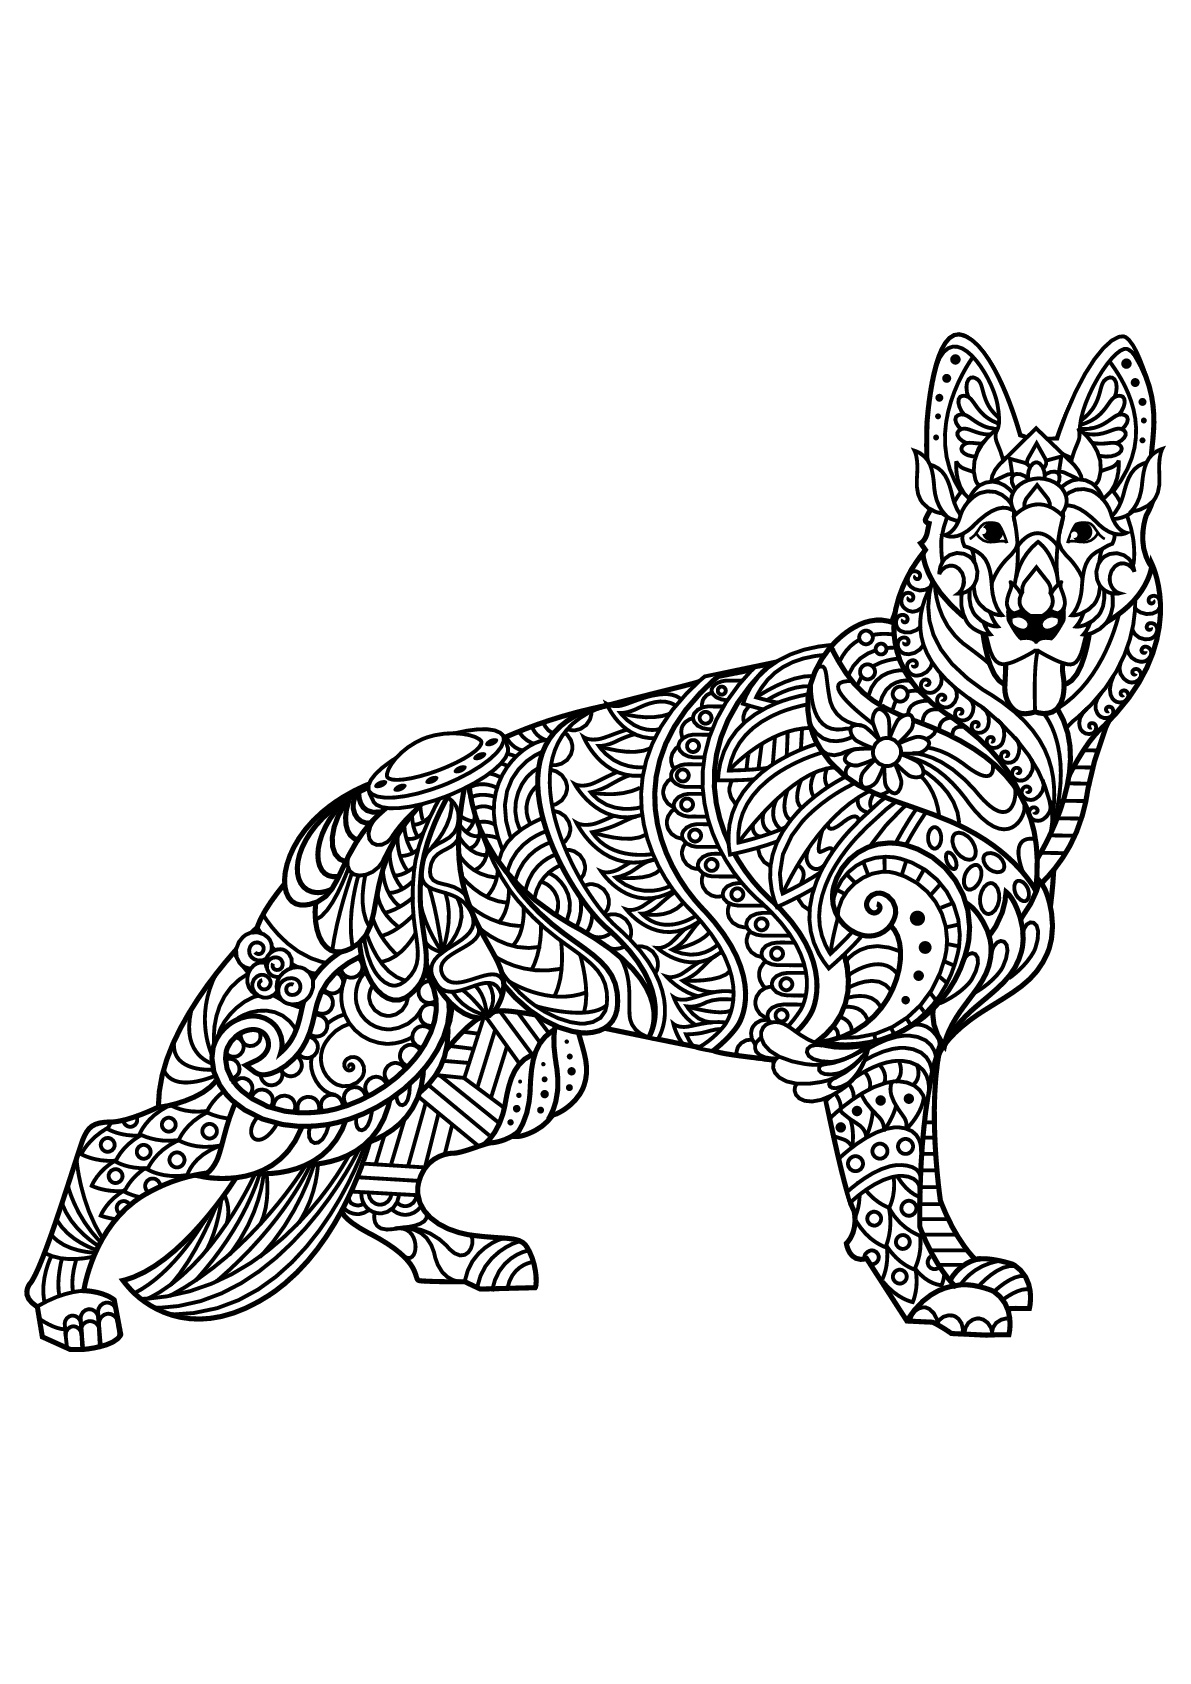 Dogs coloring pages 87